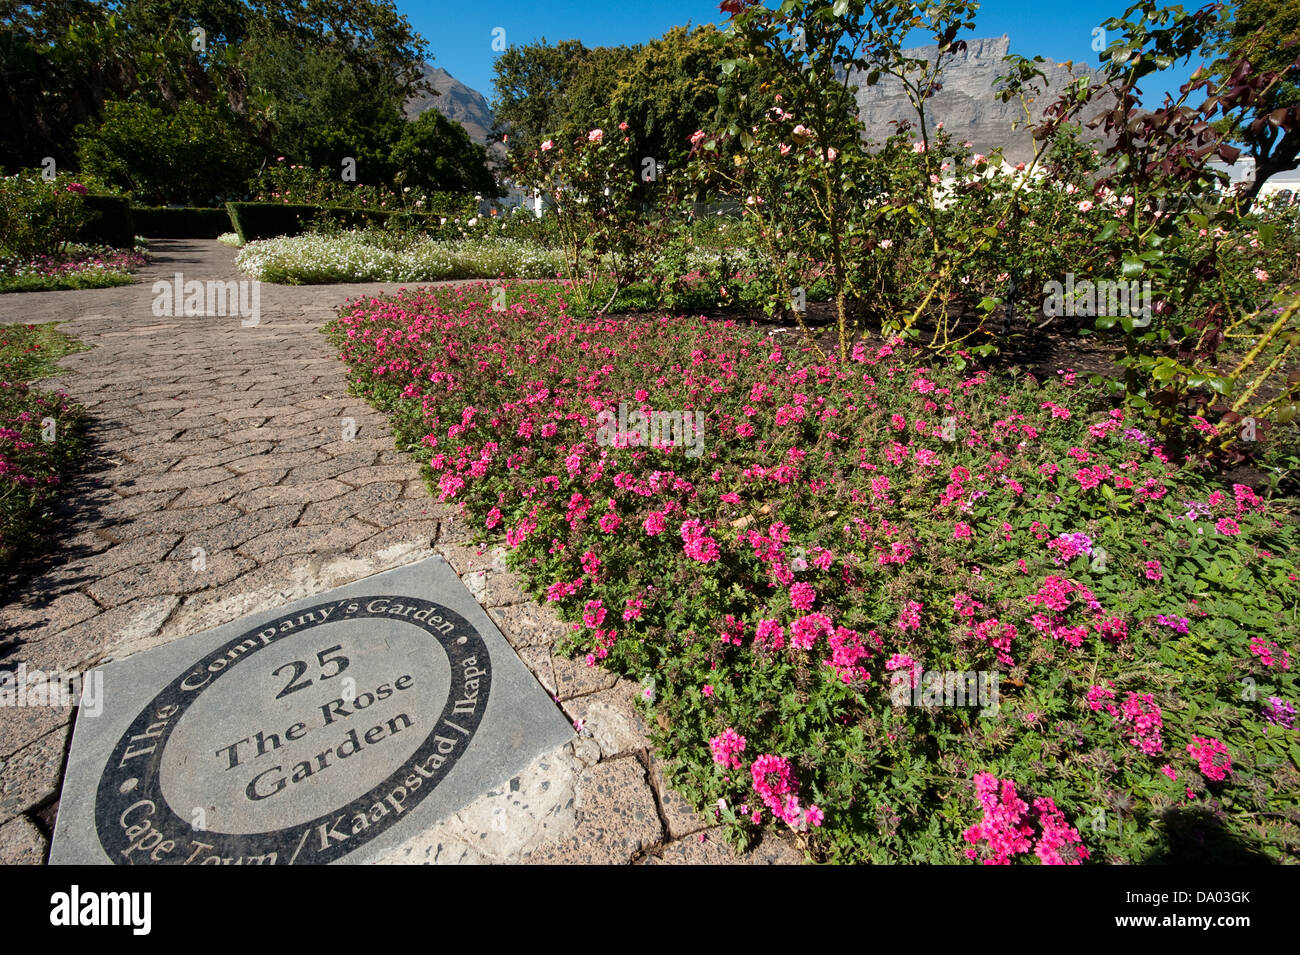 Rose Garden, The Company's Garden, Cape Town, South Africa - Stock Image